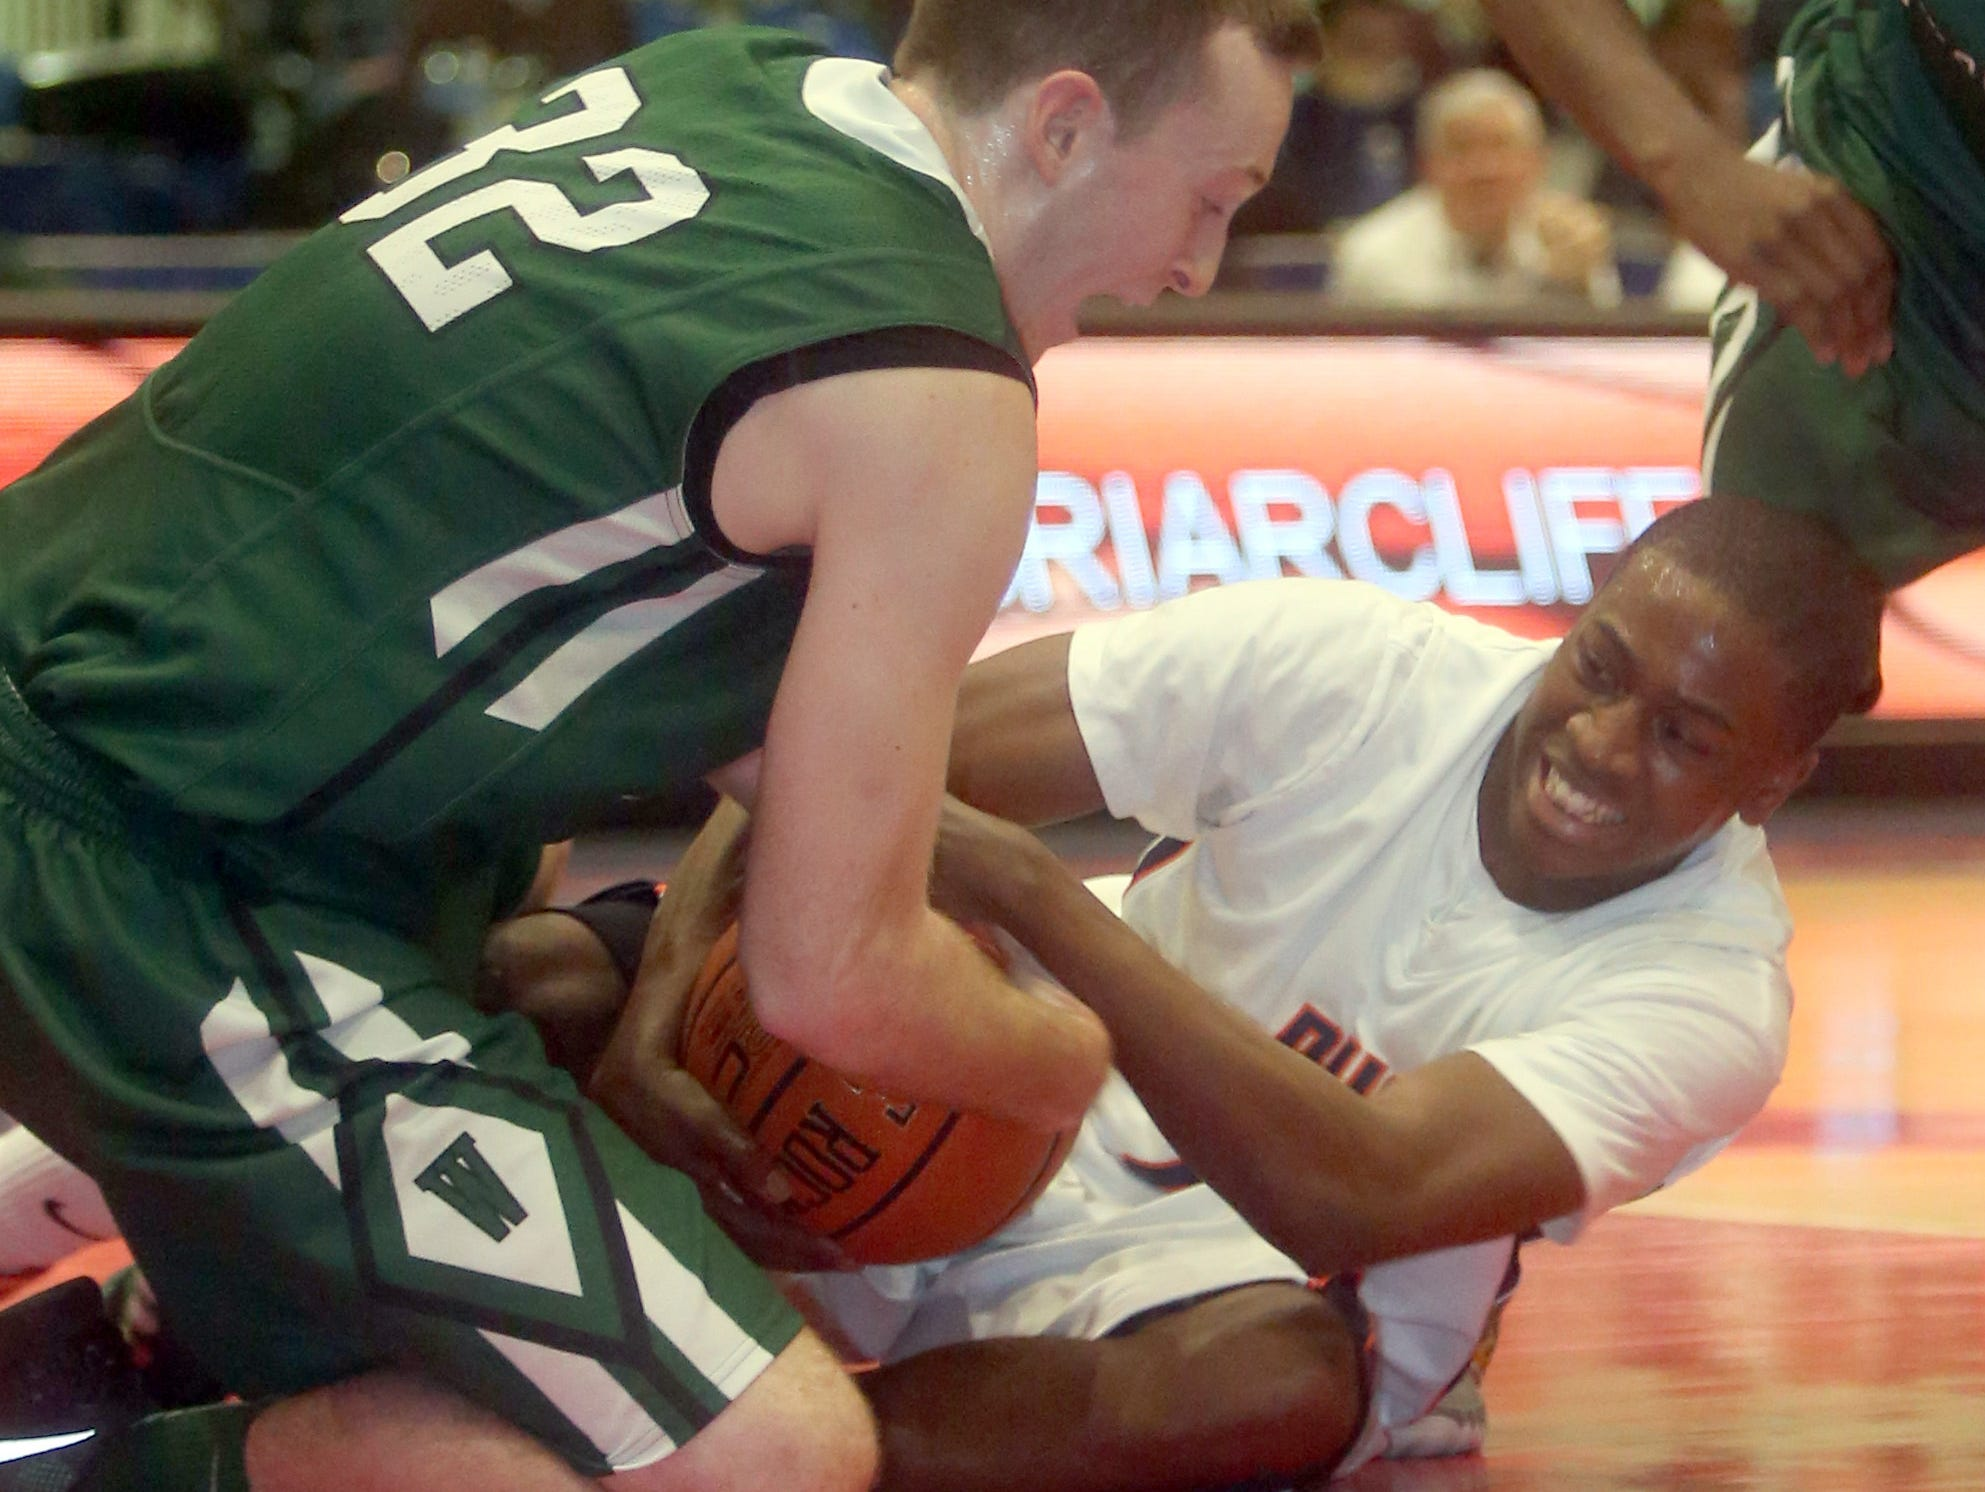 Woodlands' Kyle Smith and Briarcliff's Josiah Cobbs battle for a loose ball during a Section 1 Class B semifinal basketball game at the Westchester County Center in White Plains Feb. 24, 2016. Briarcliff defeated Woodlands 65-56 to advance to the Class B final.